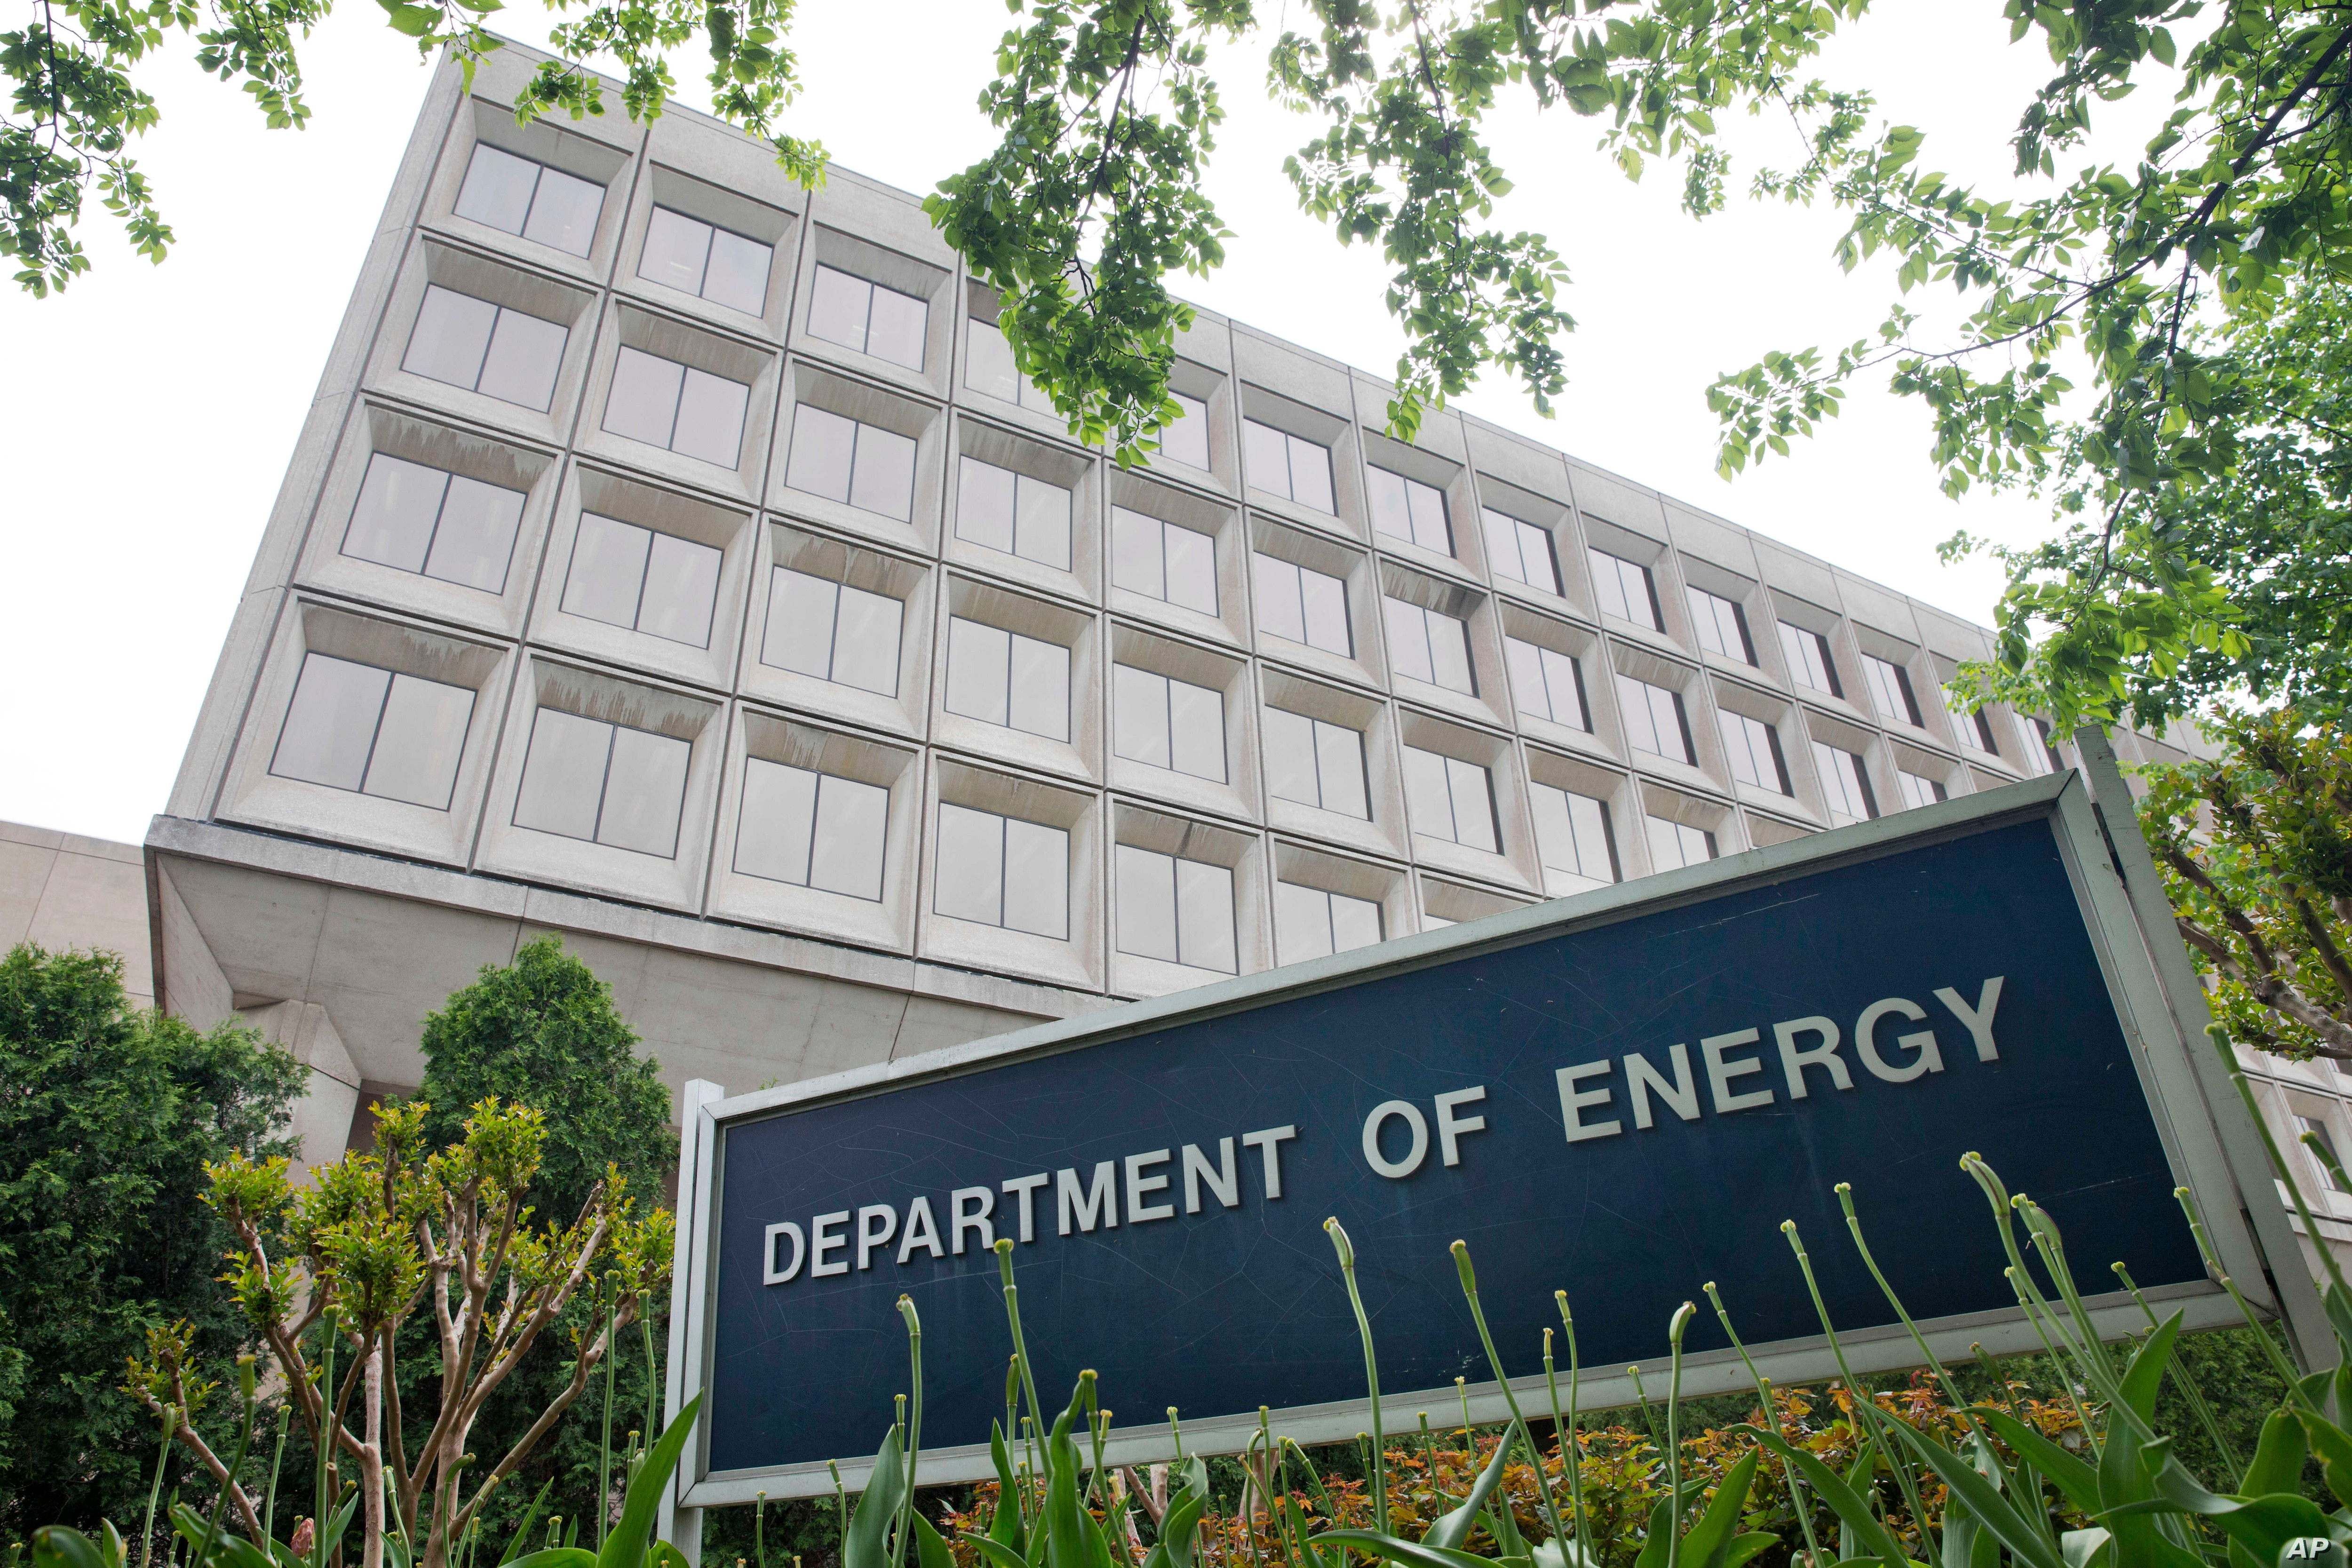 FILE - The Department of Energy is seen in Washington, D.C., May 1, 2015. The Trump transition team has disavowed a survey it sent to the Department survey sent to the U.S. Department of Energy requesting the names of people working on climate change